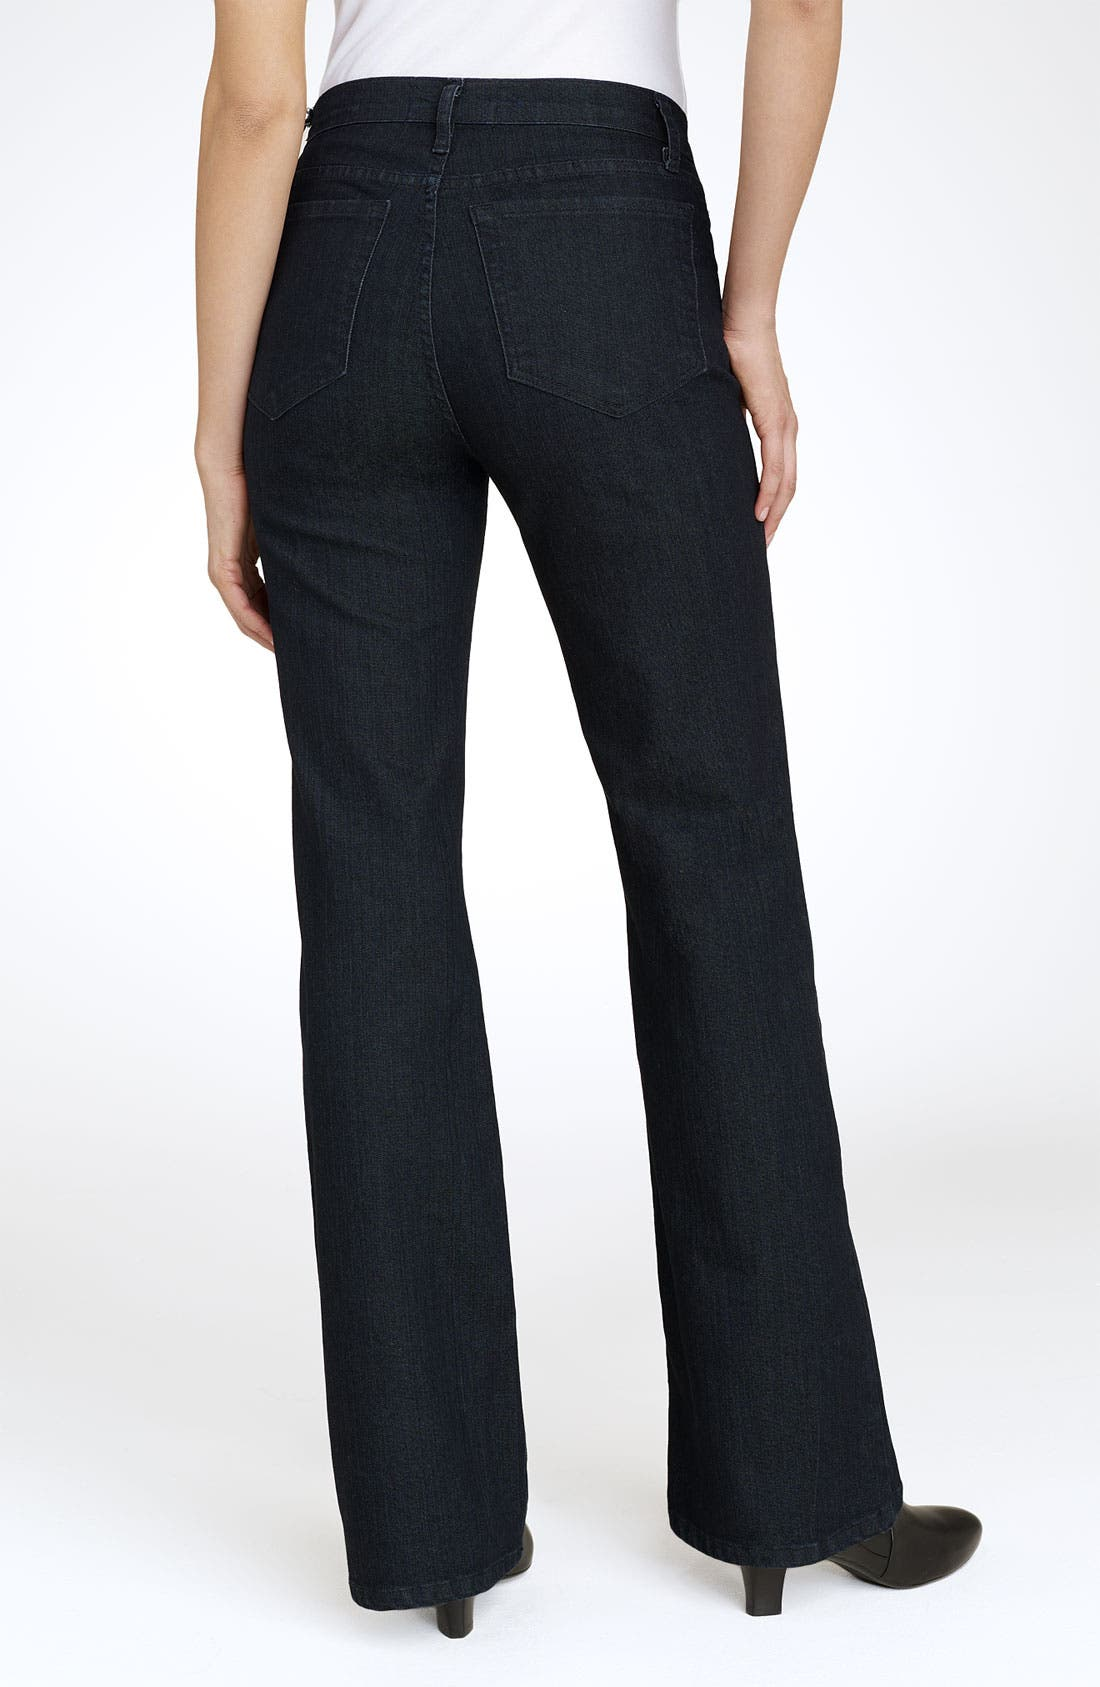 Alternate Image 2  - NYDJ 'Sarah' Stretch Bootcut Jeans (Regular & Petite)